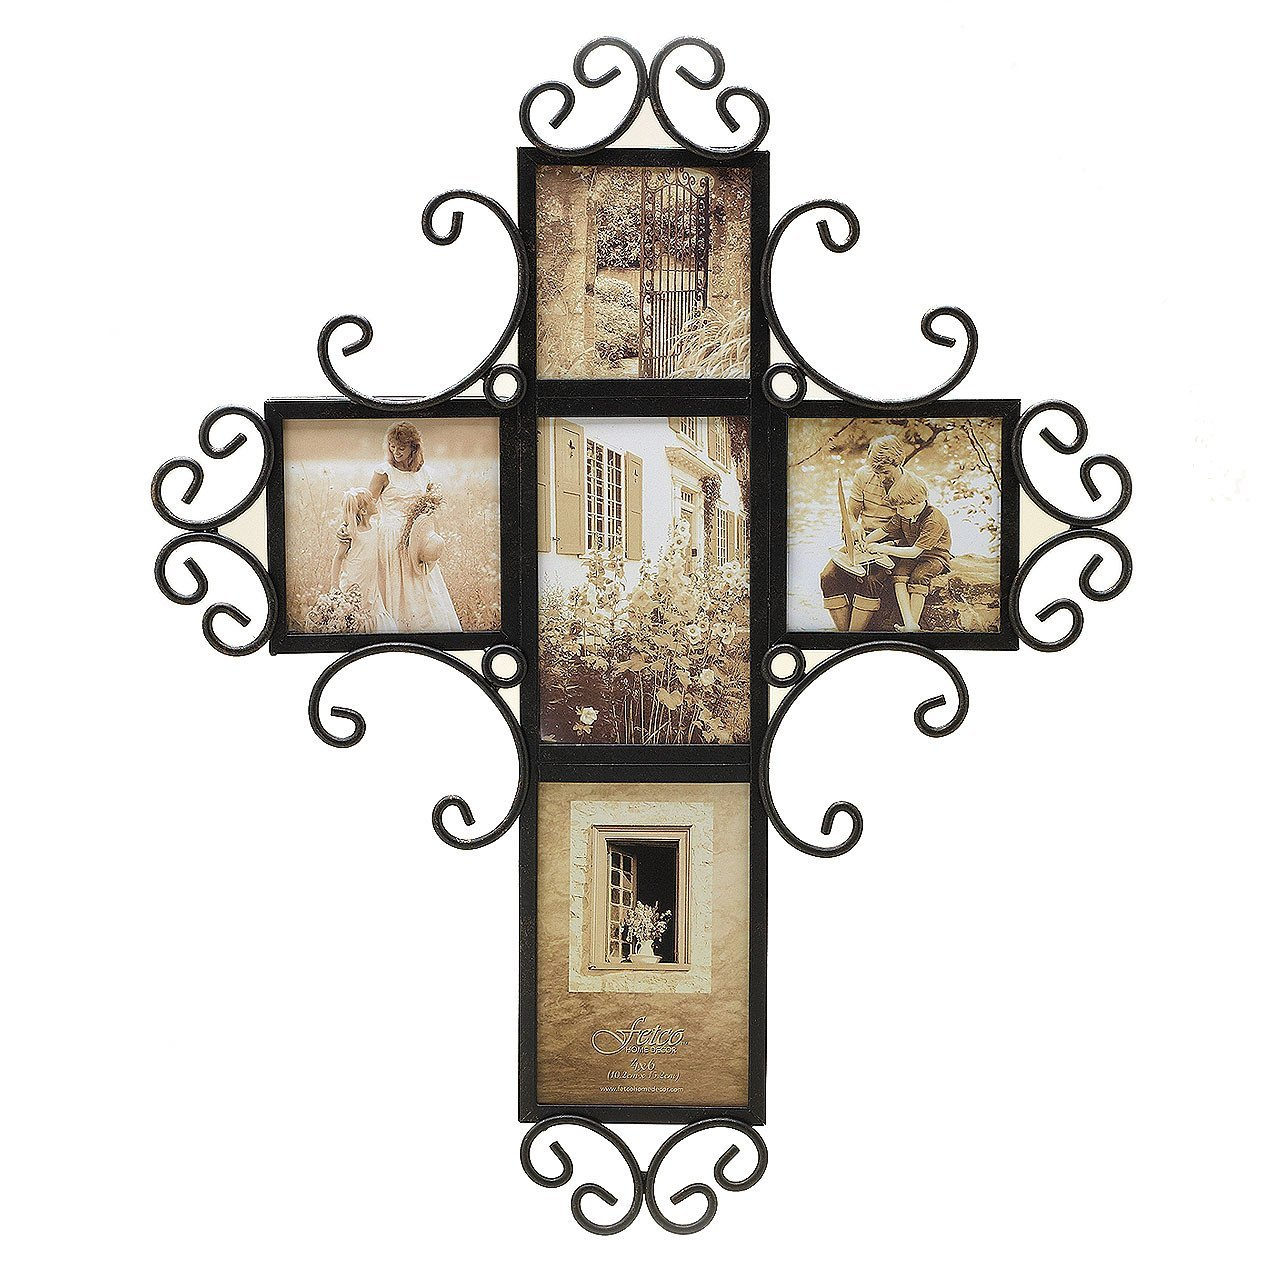 Home Decor Crosses 71ifpf1ggll Sl1280 Jpg T U003d1457324445